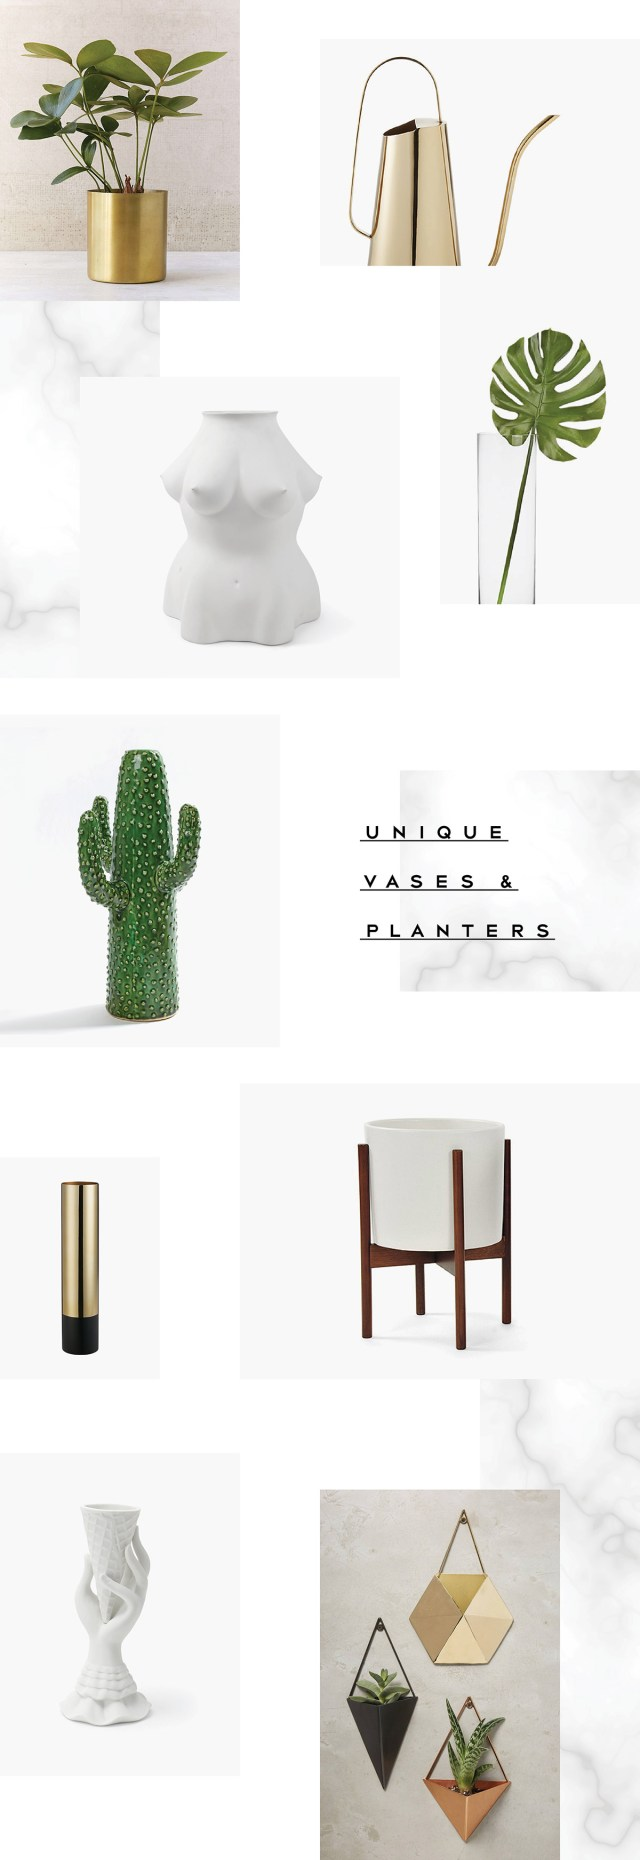 Latest & Greatest #35: Unique Planters and Vases